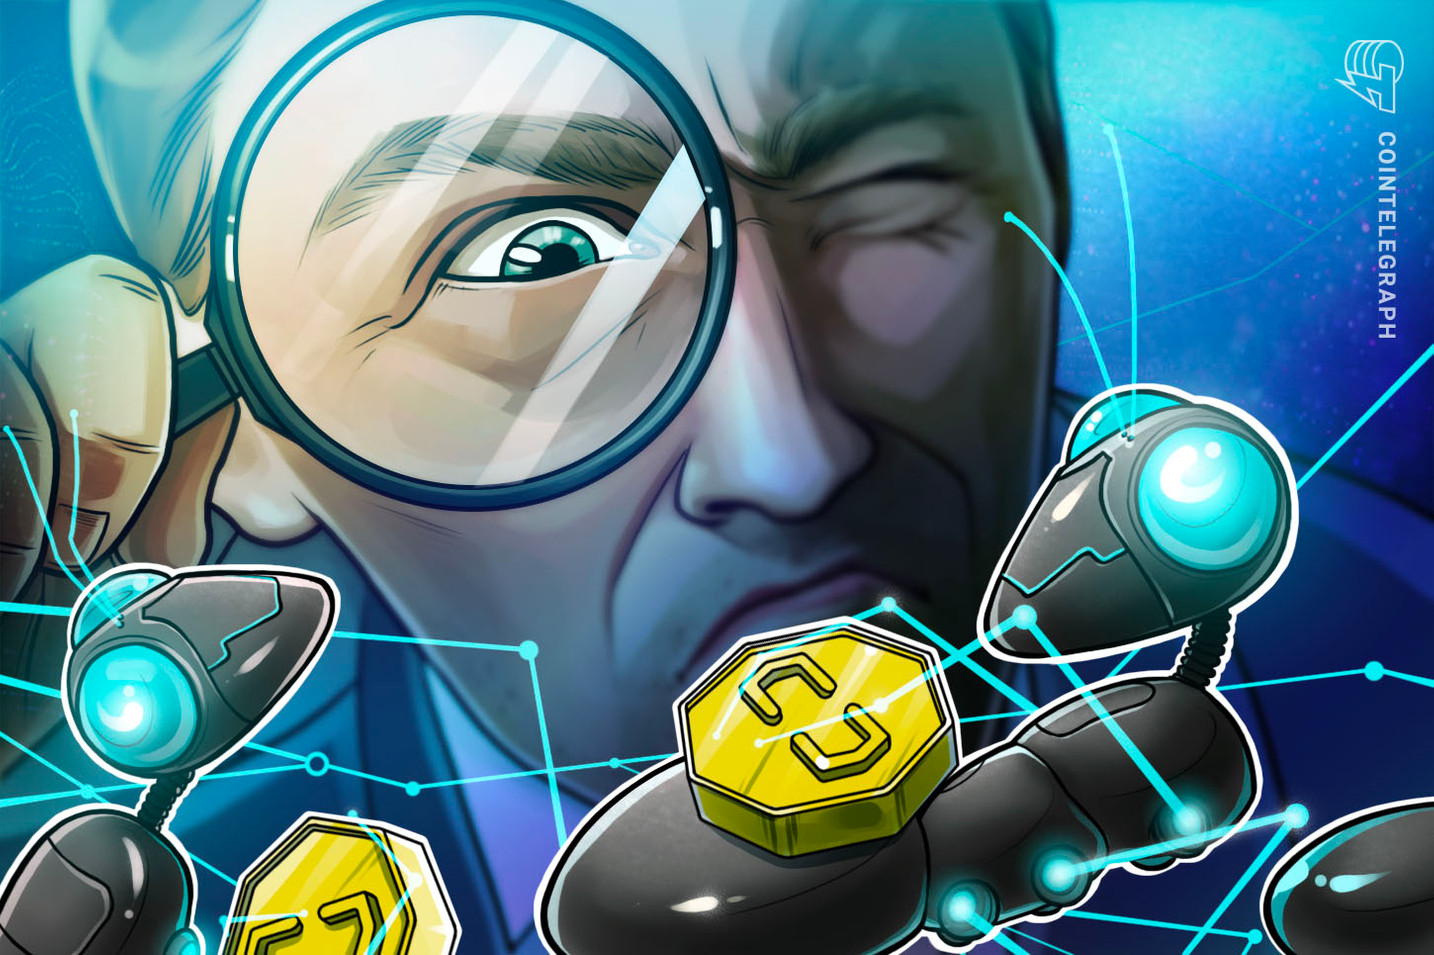 Bittrex to Use Chainalysis Tool to Identify High-Risk Transactions